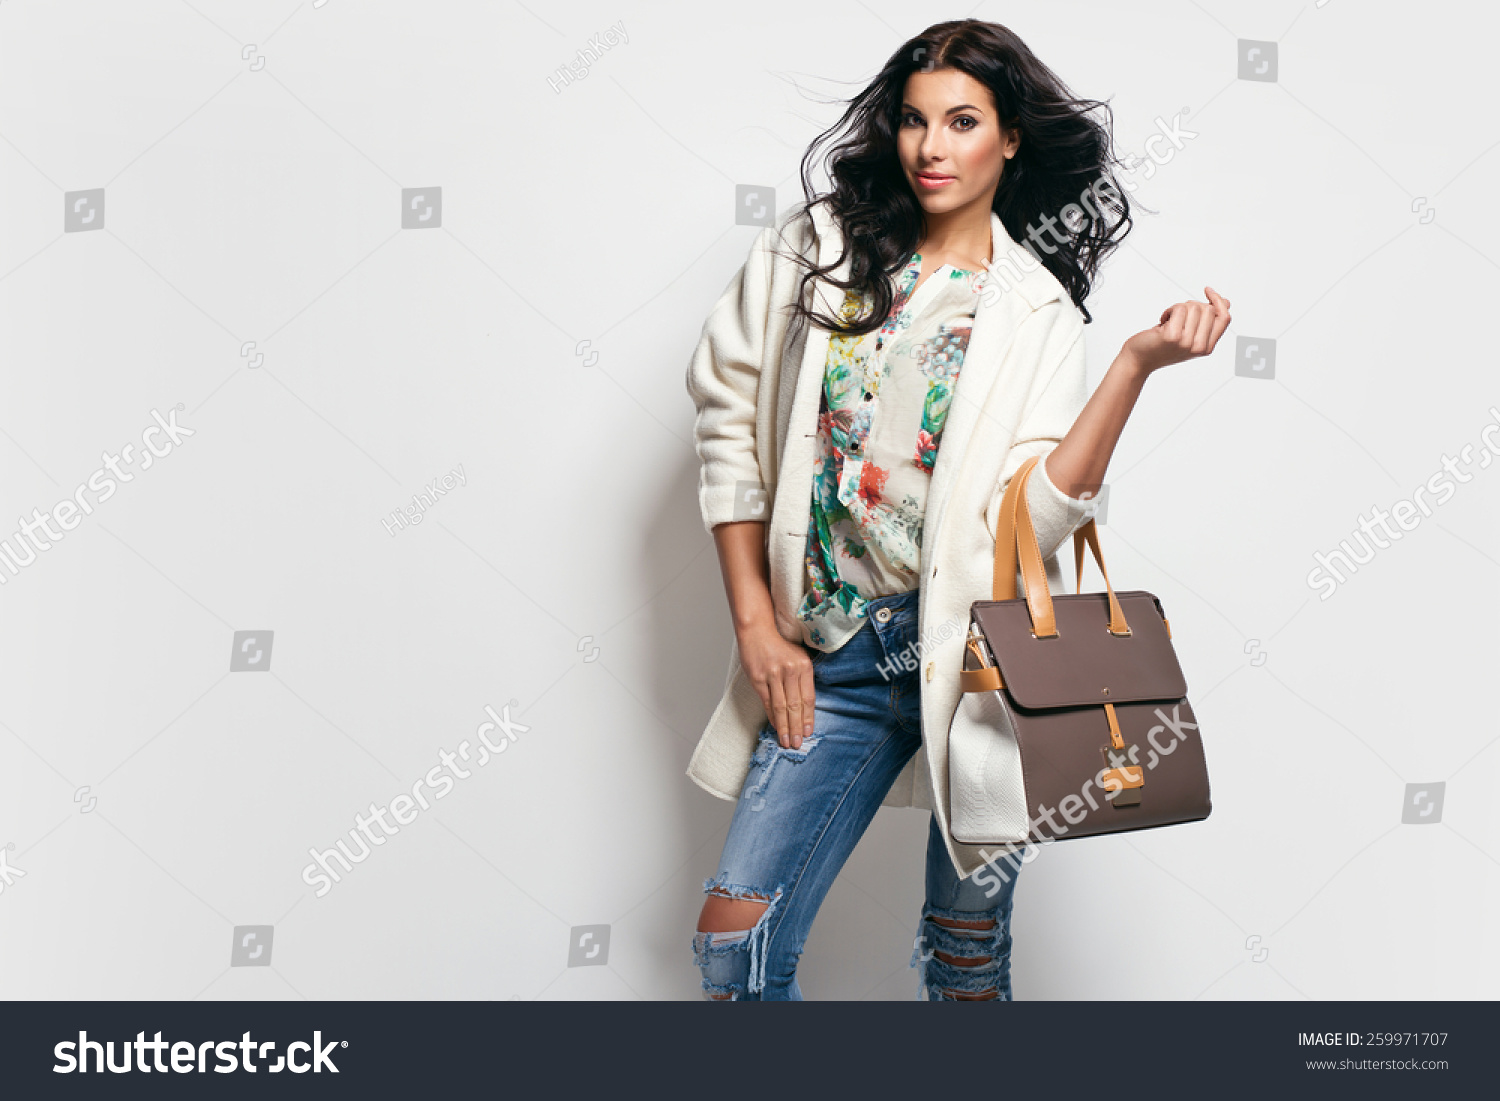 Models Of Handbags Fashion Jeans